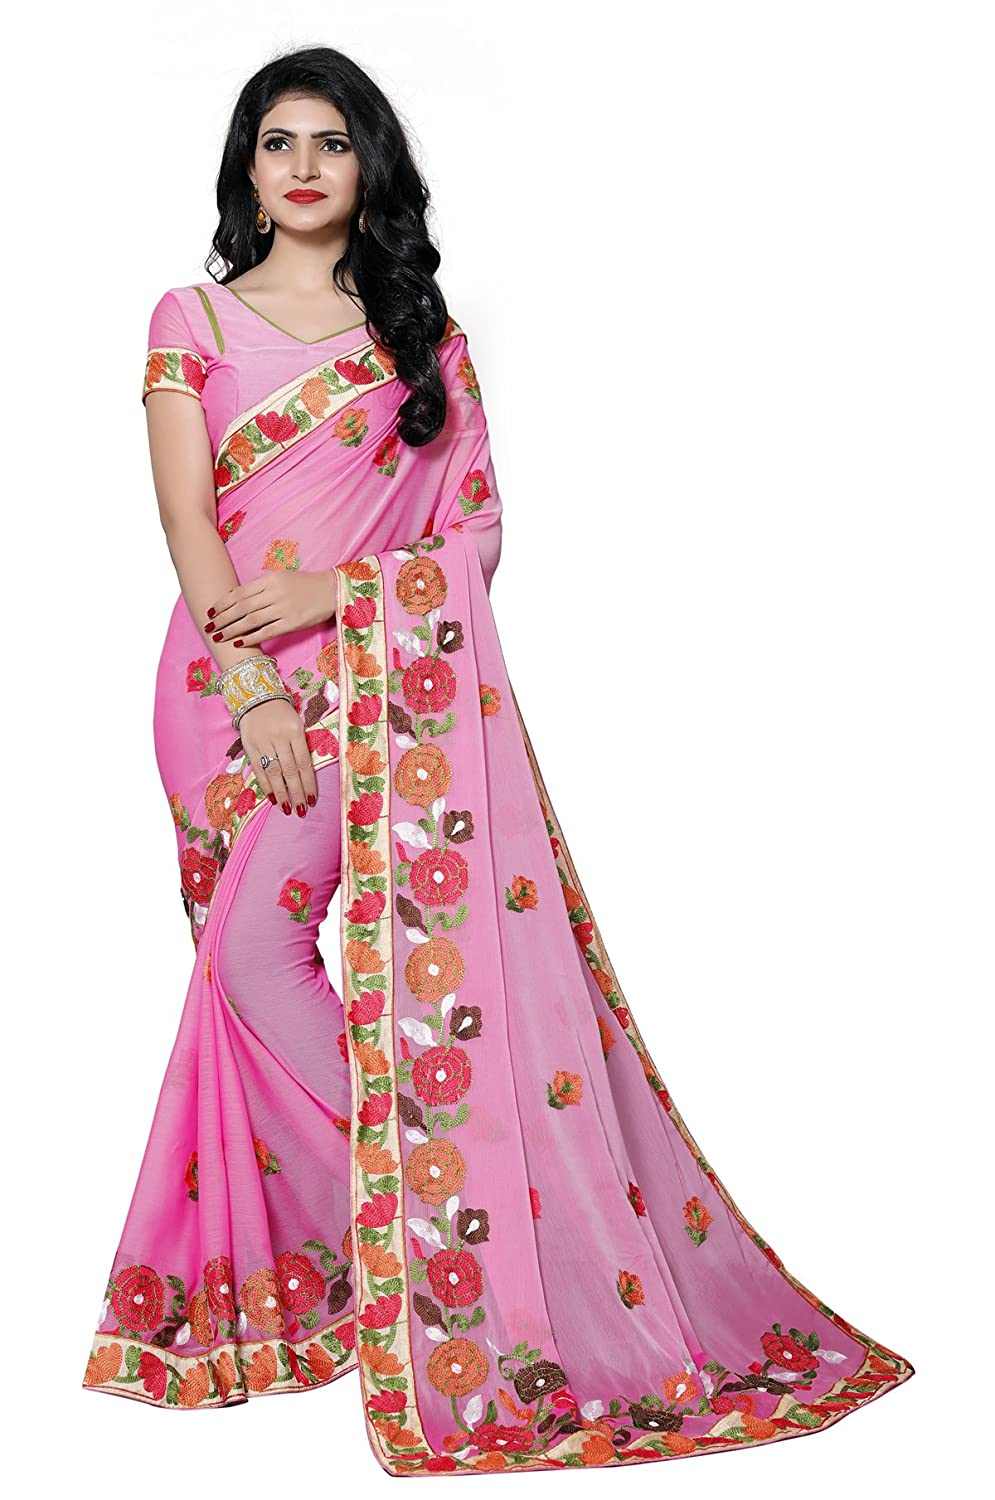 da6d9d2e71f Culture Fab Women Chiffon Latest Designer Embroidery Partywear Fancy Saree  With Blouse Piece (Fb-1052 Pink)  Amazon.in  Clothing   Accessories